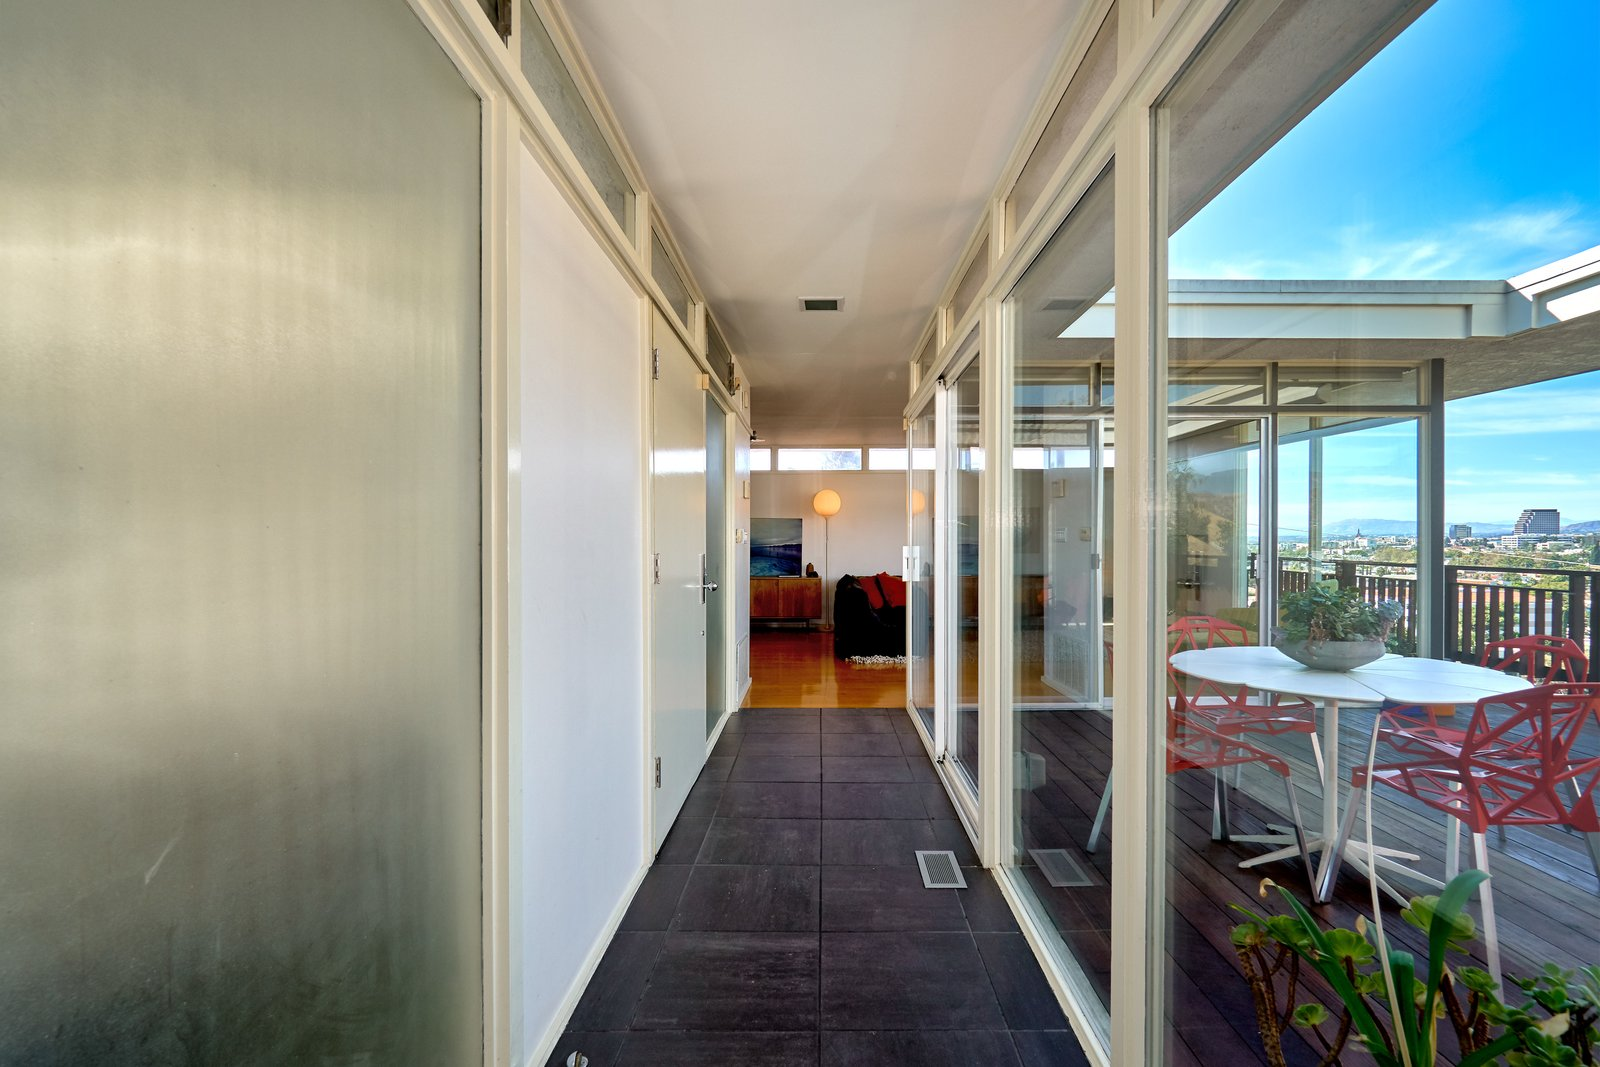 Hallway and Cement Tile Floor A narrow hallway with black slate tiles connects the two wings of the house.  Photo 10 of 14 in A Midcentury-Modern Home in L.A. Designed by Richard Banta Is For Sale For $899K